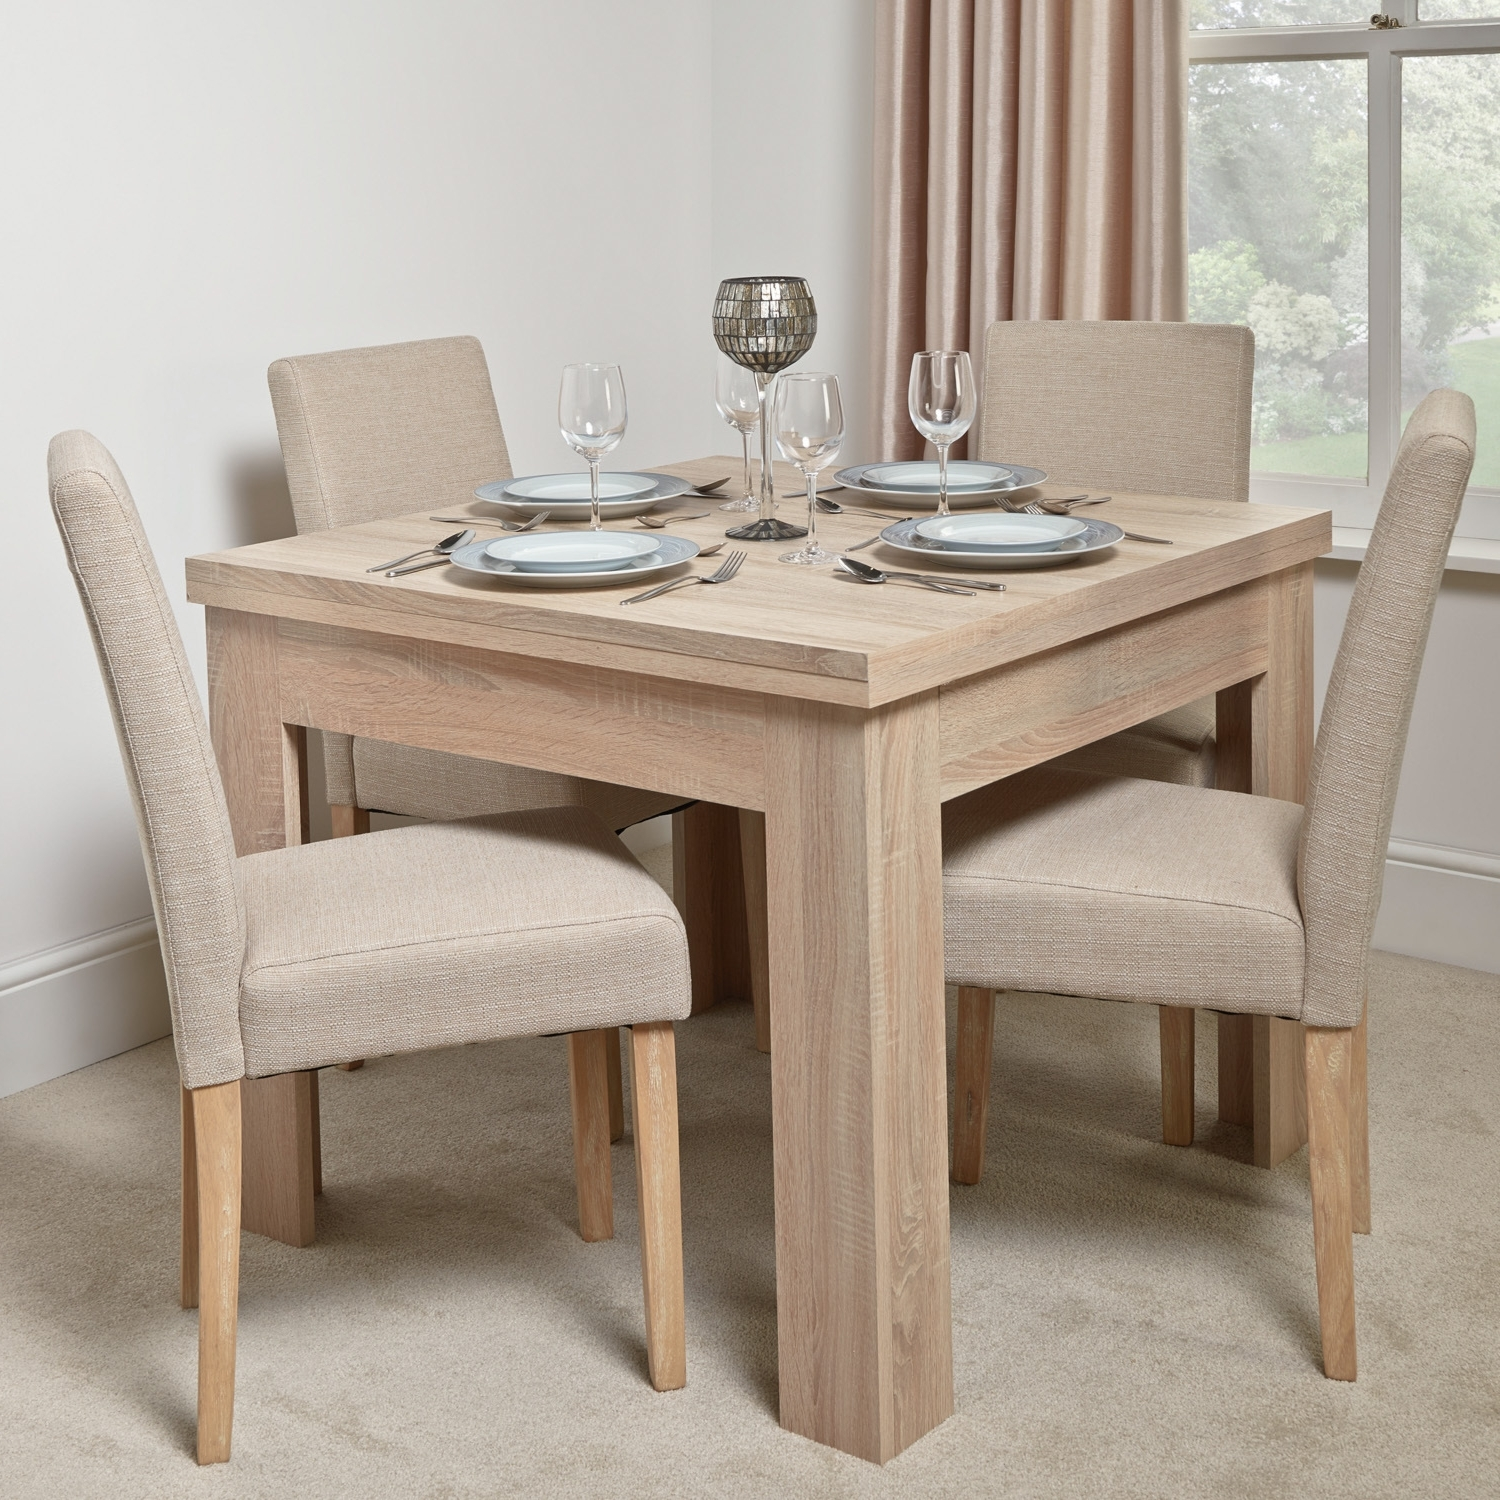 Most Current Calpe Flip Extending Dining Table Pertaining To Extending Dining Room Tables And Chairs (View 12 of 25)